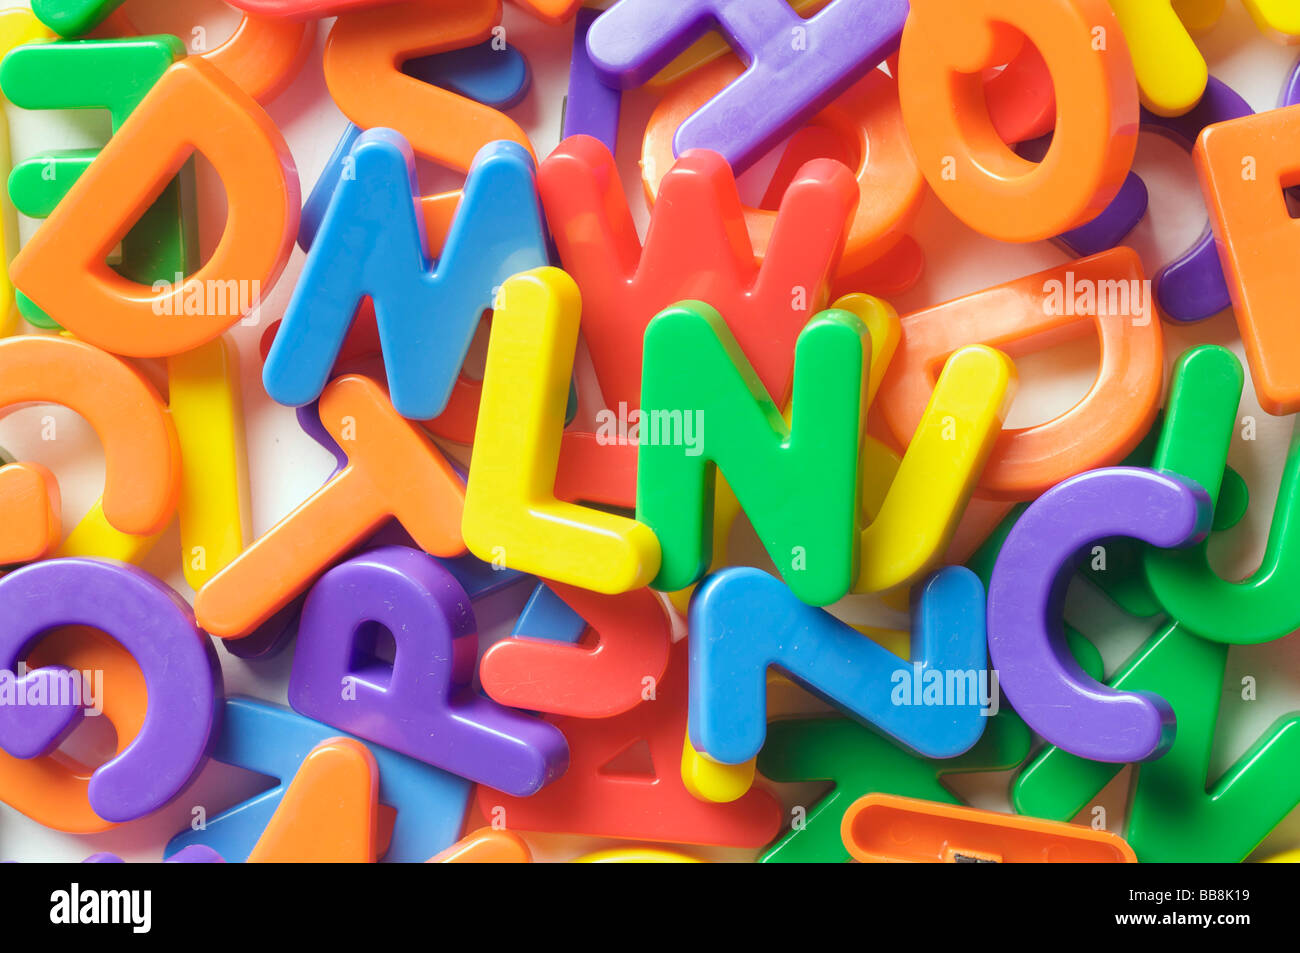 Alphabetic characters, letters, multi-coloured - Stock Image